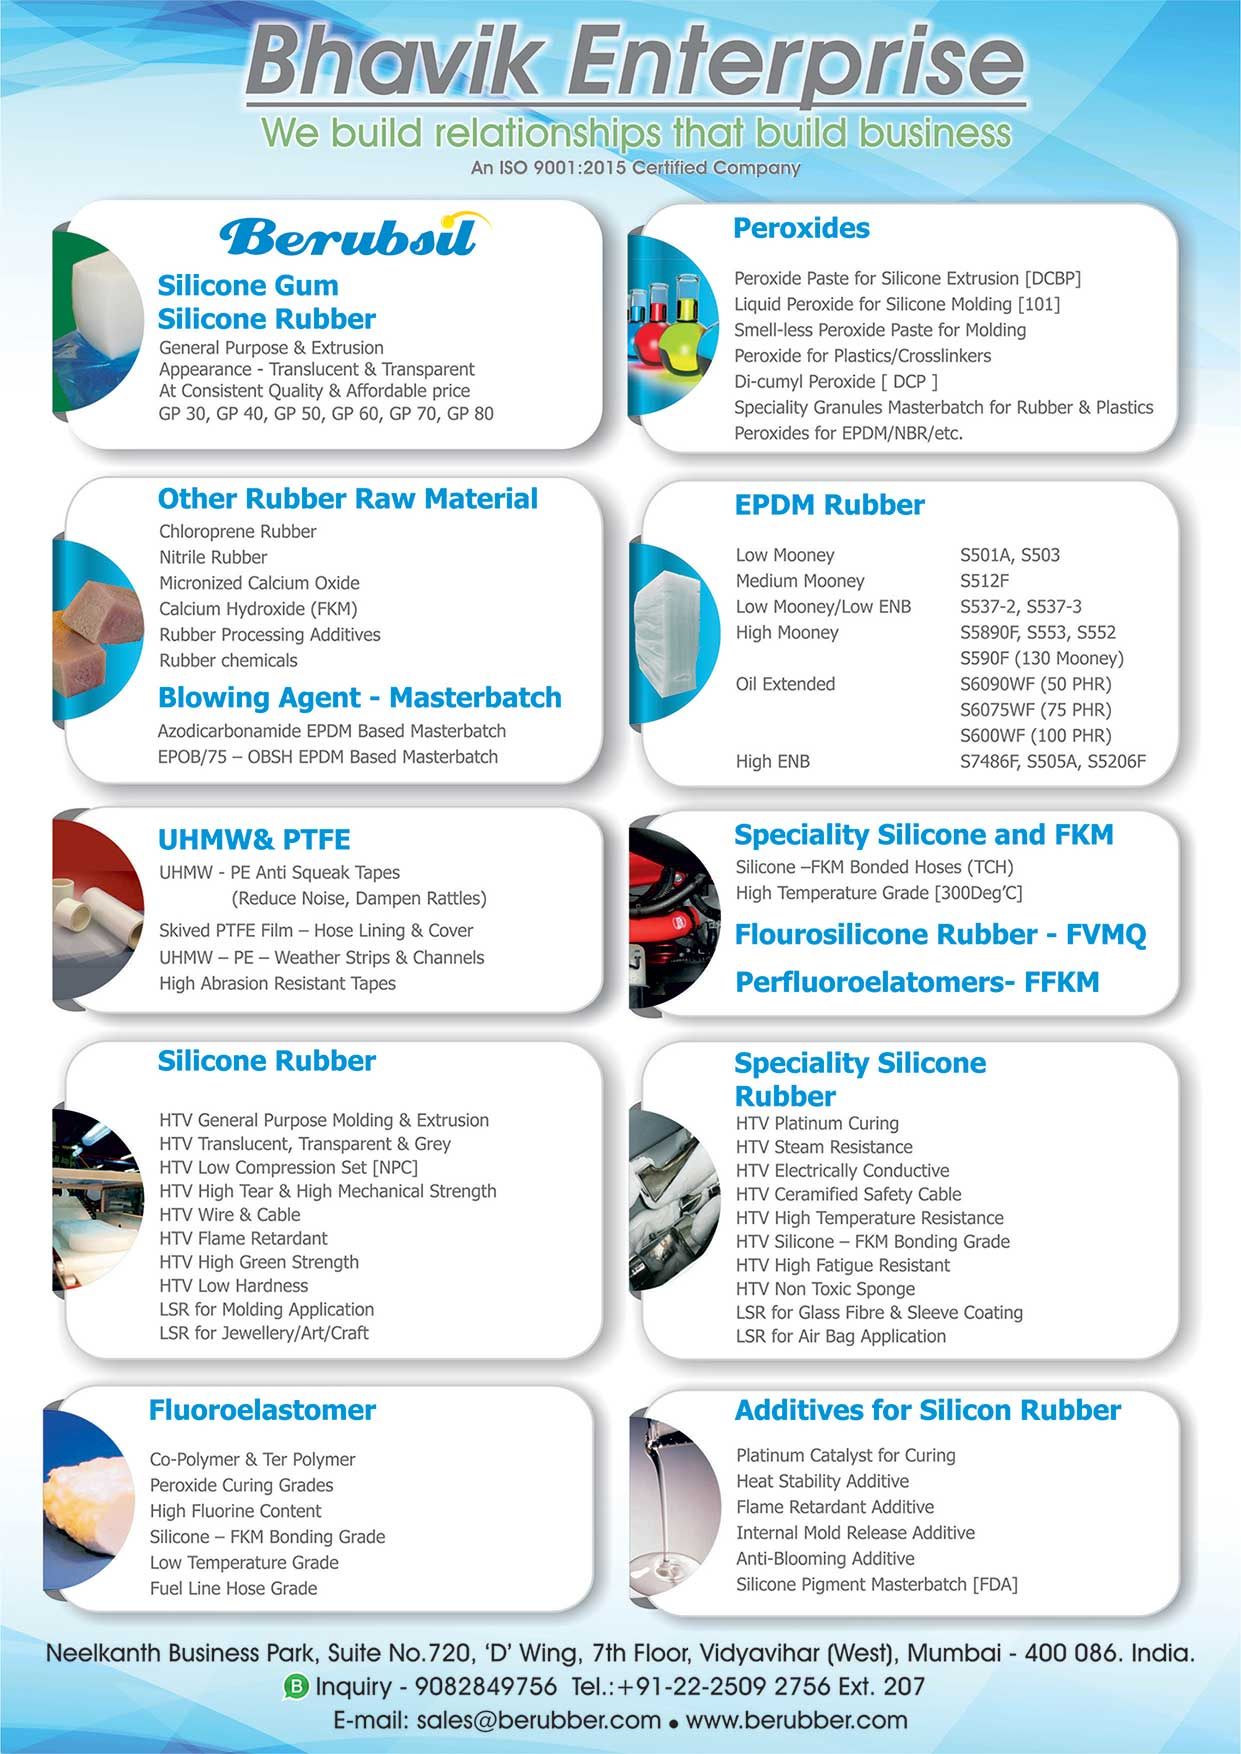 Bhavik Enterprise - Importer and Distributor of Synthetic Rubber